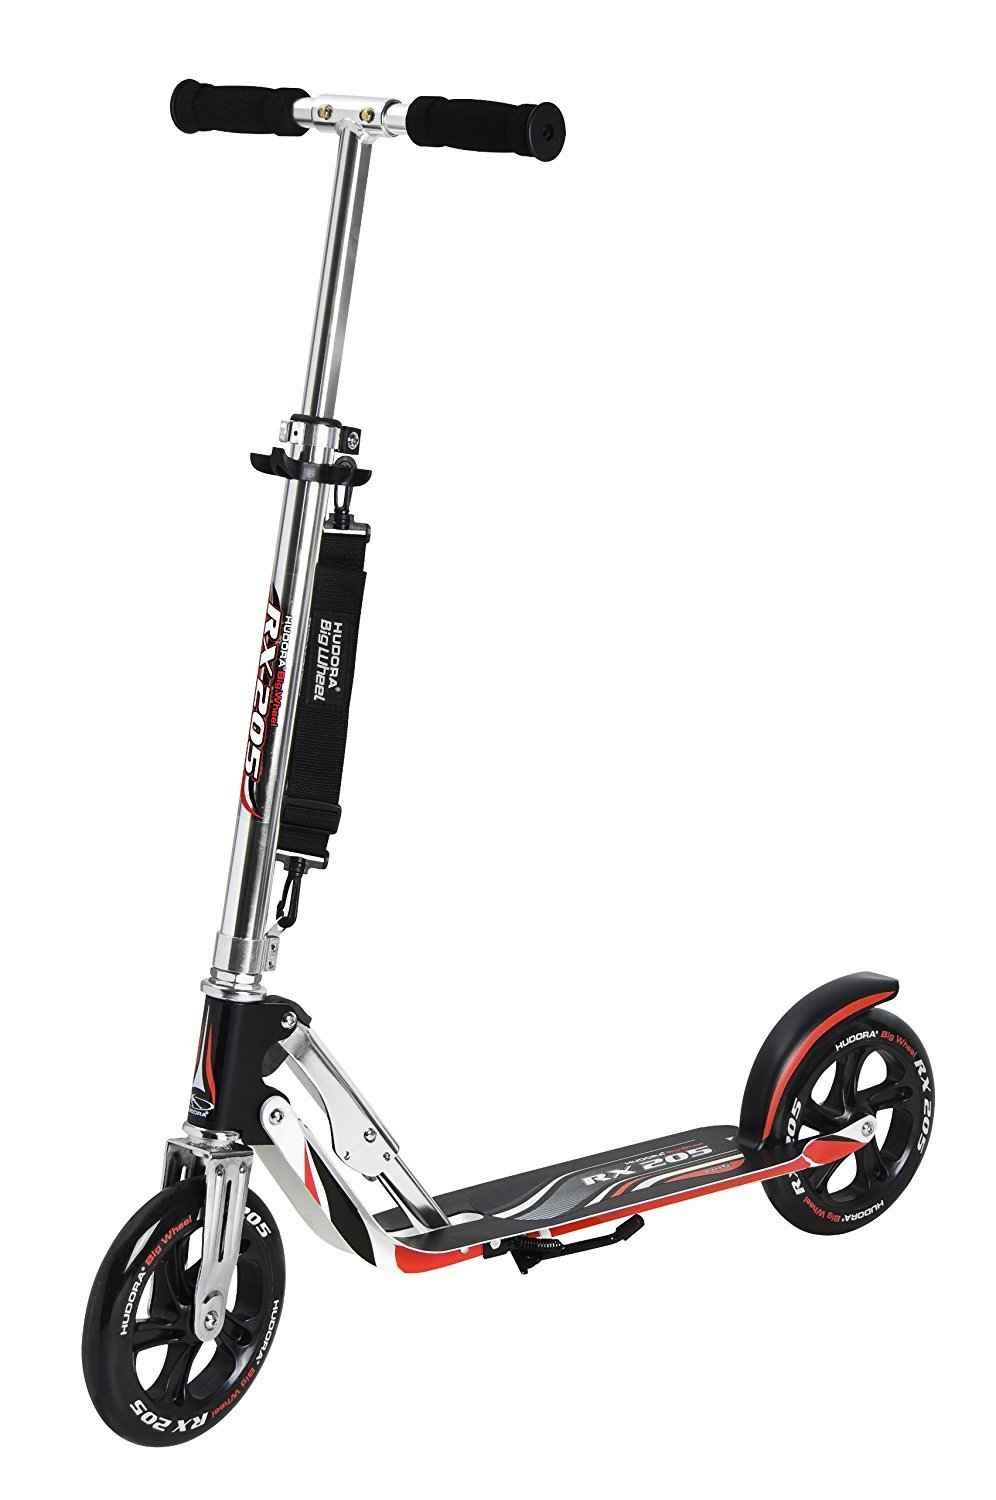 hudora 14724 big wheel scooter 205 spielzeug test 2019. Black Bedroom Furniture Sets. Home Design Ideas